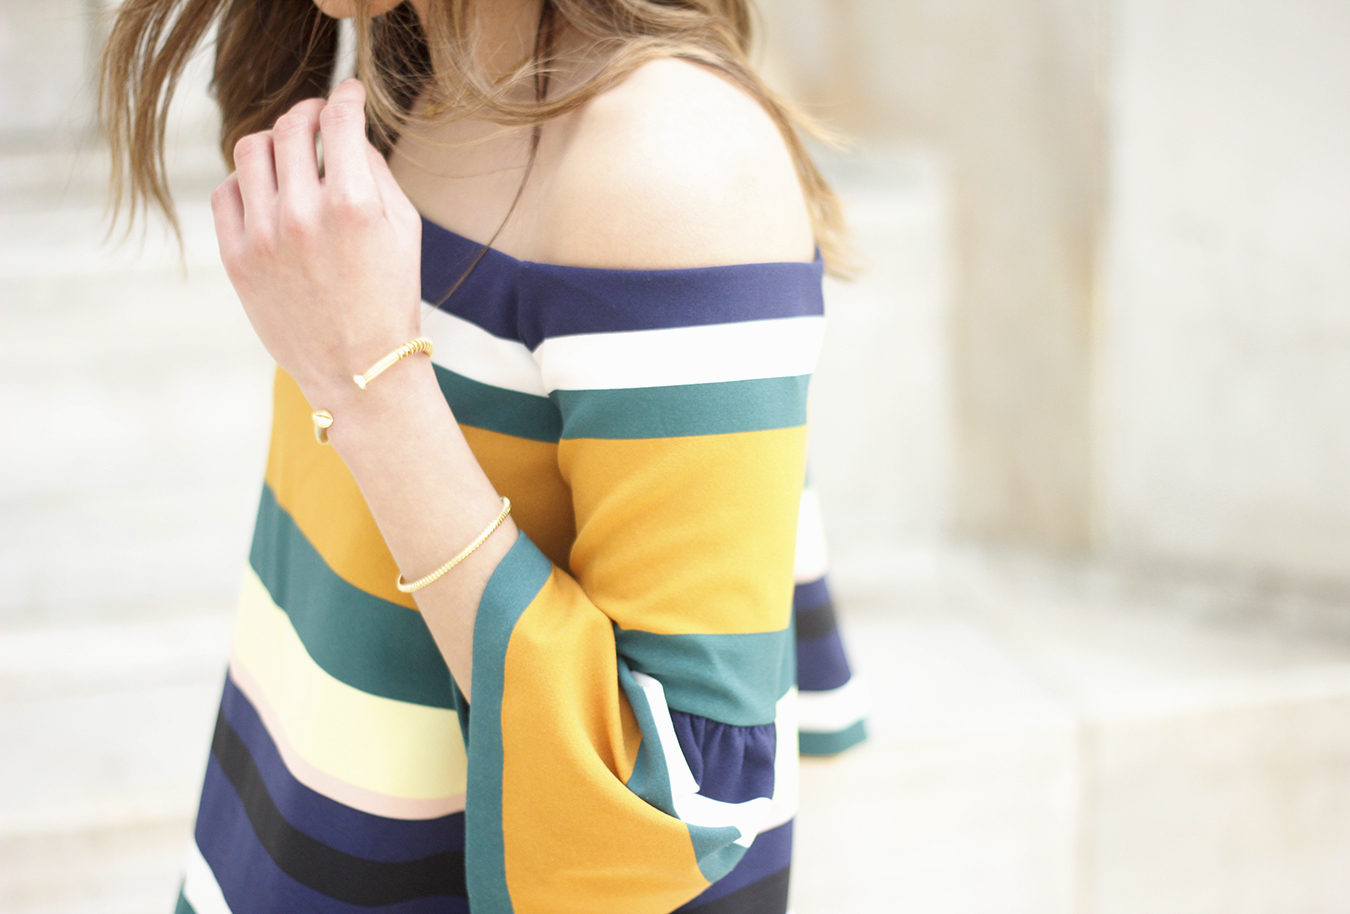 Off The Shoulder Top with stripes jeans heels accessories bag aristocrazy09